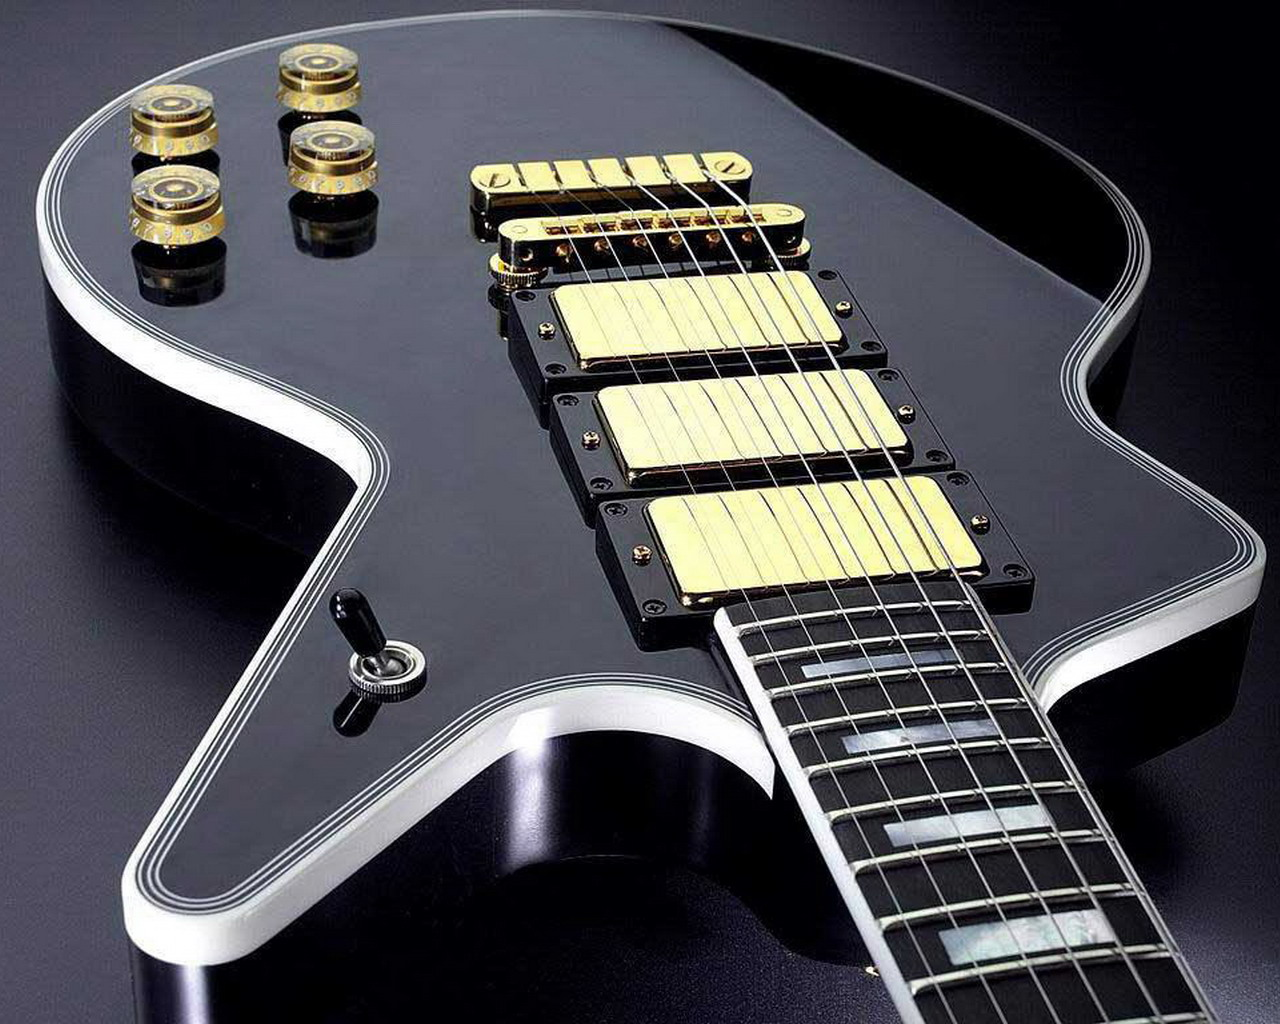 Guitar Rock wallpapers 1280x1024  Wallpapers Collections